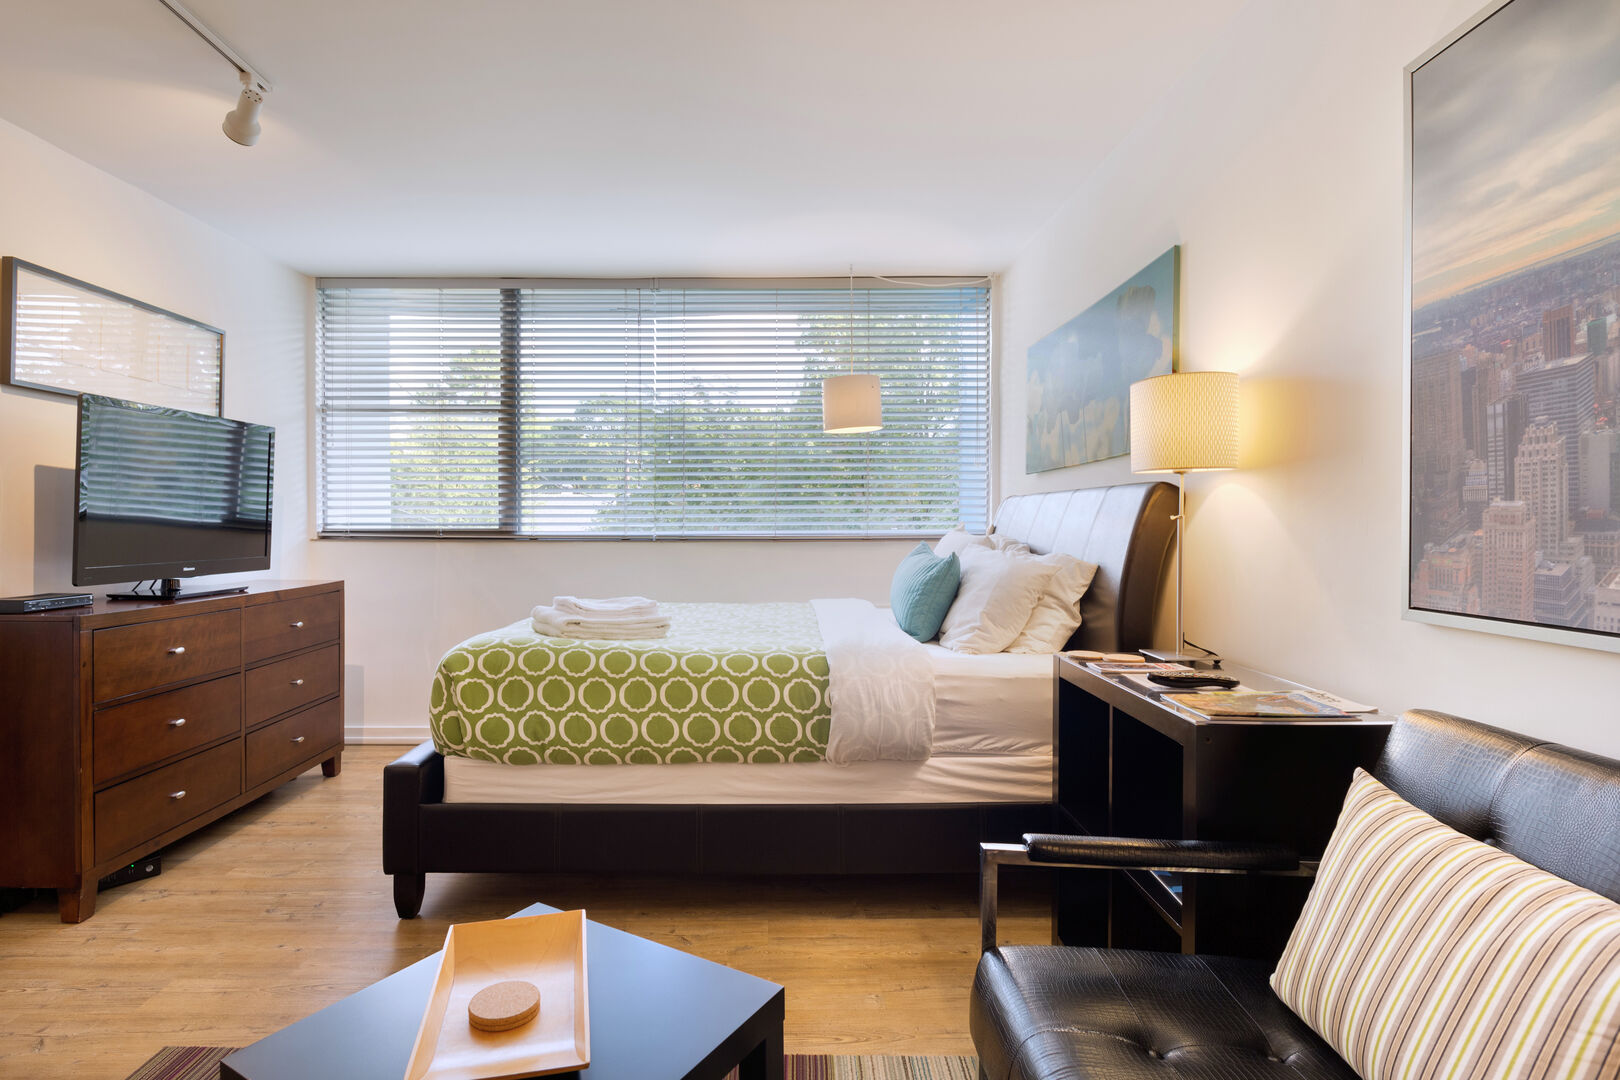 Furnished Living Room and Bedroom - Corporate Apartments - Chic Premium Studios On 25th